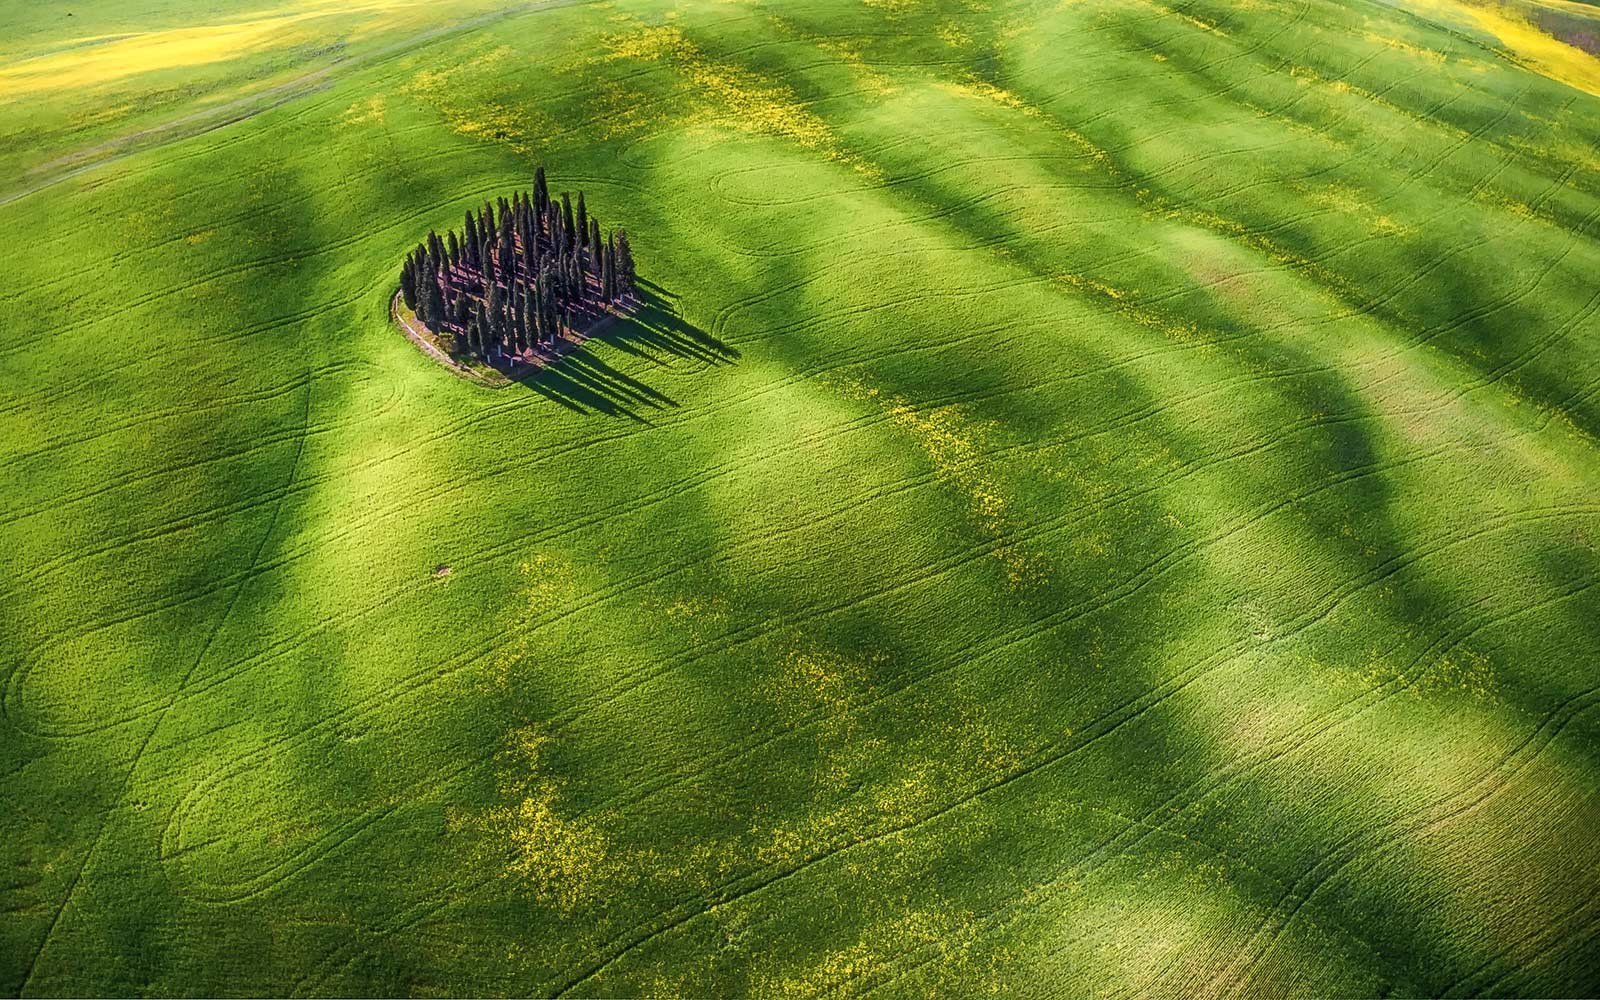 SkyPixel Aerial Photo Contest Winners